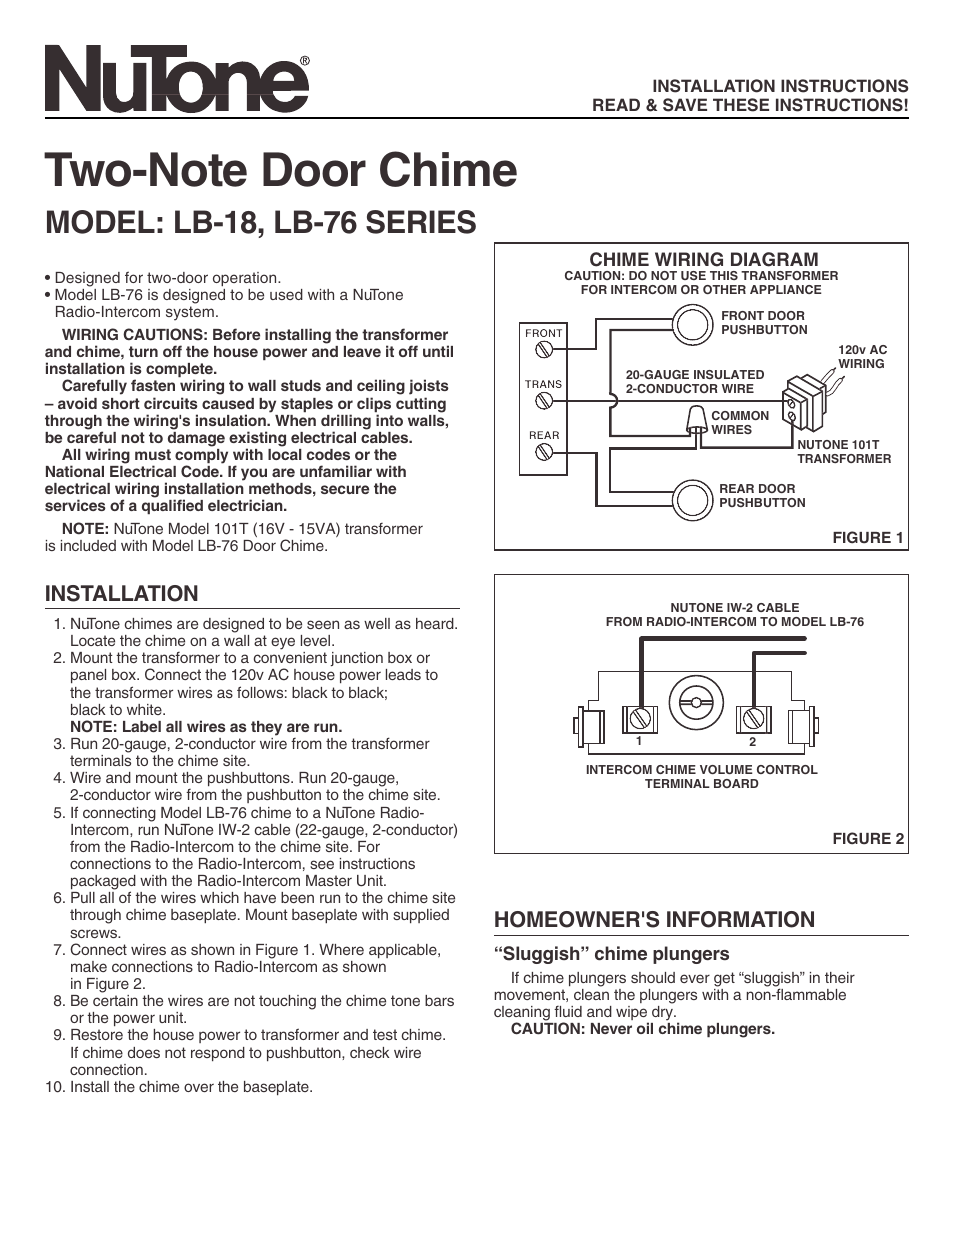 nutone two note door chime lb 76 page1 nutone two note door chime lb 76 user manual 2 pages also for nutone door chime wiring diagram at mifinder.co